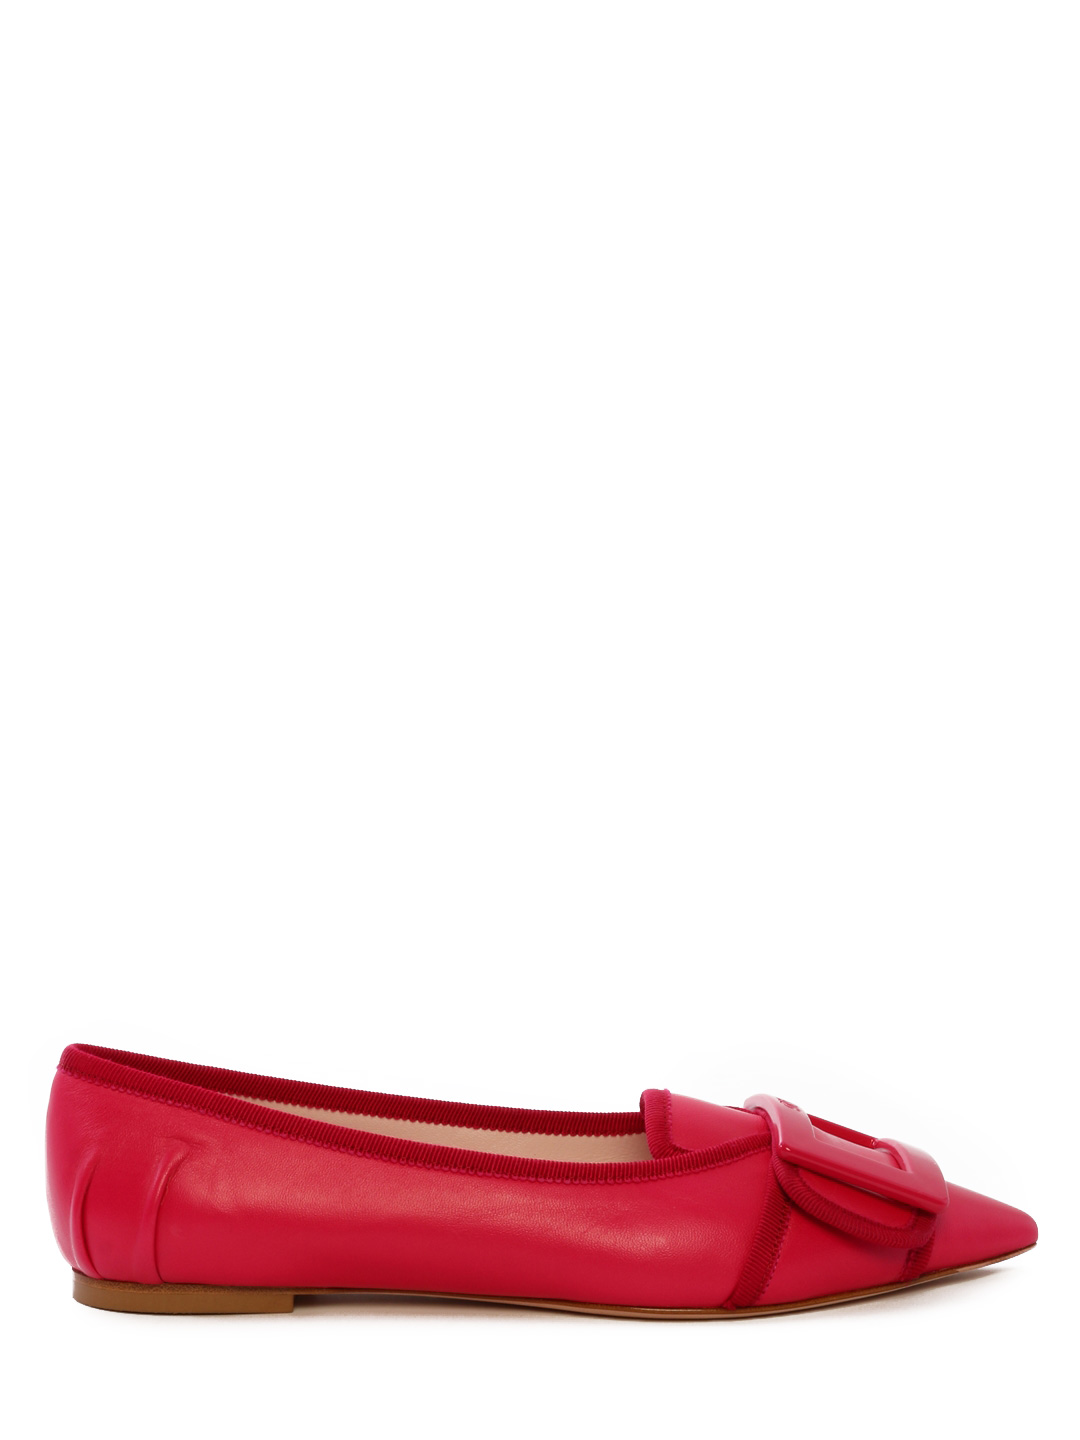 Ballet Shoes Fuchsia Leather